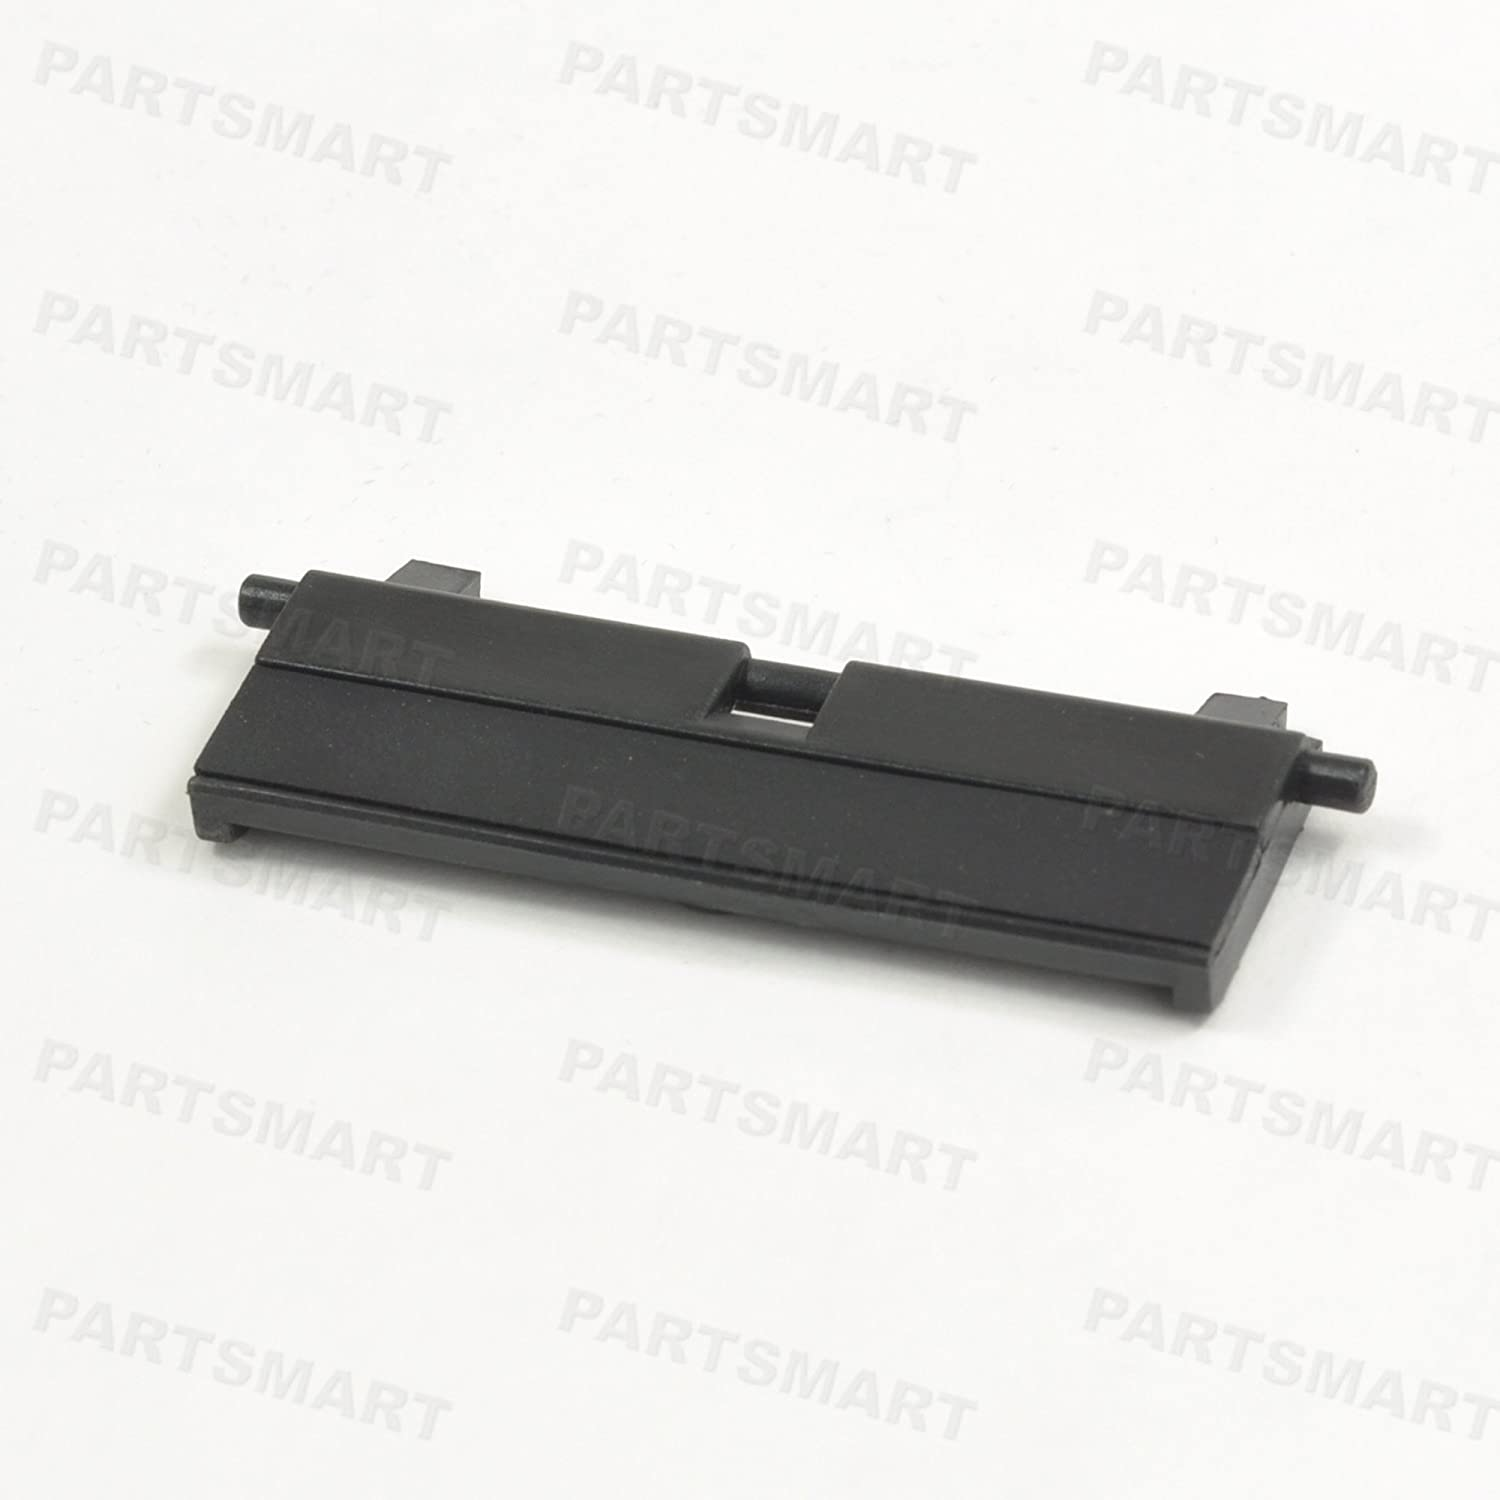 RM1-1298-PAD Separation Pad Only, Tray 2 for HP LaserJet 1320, LaserJet 2400